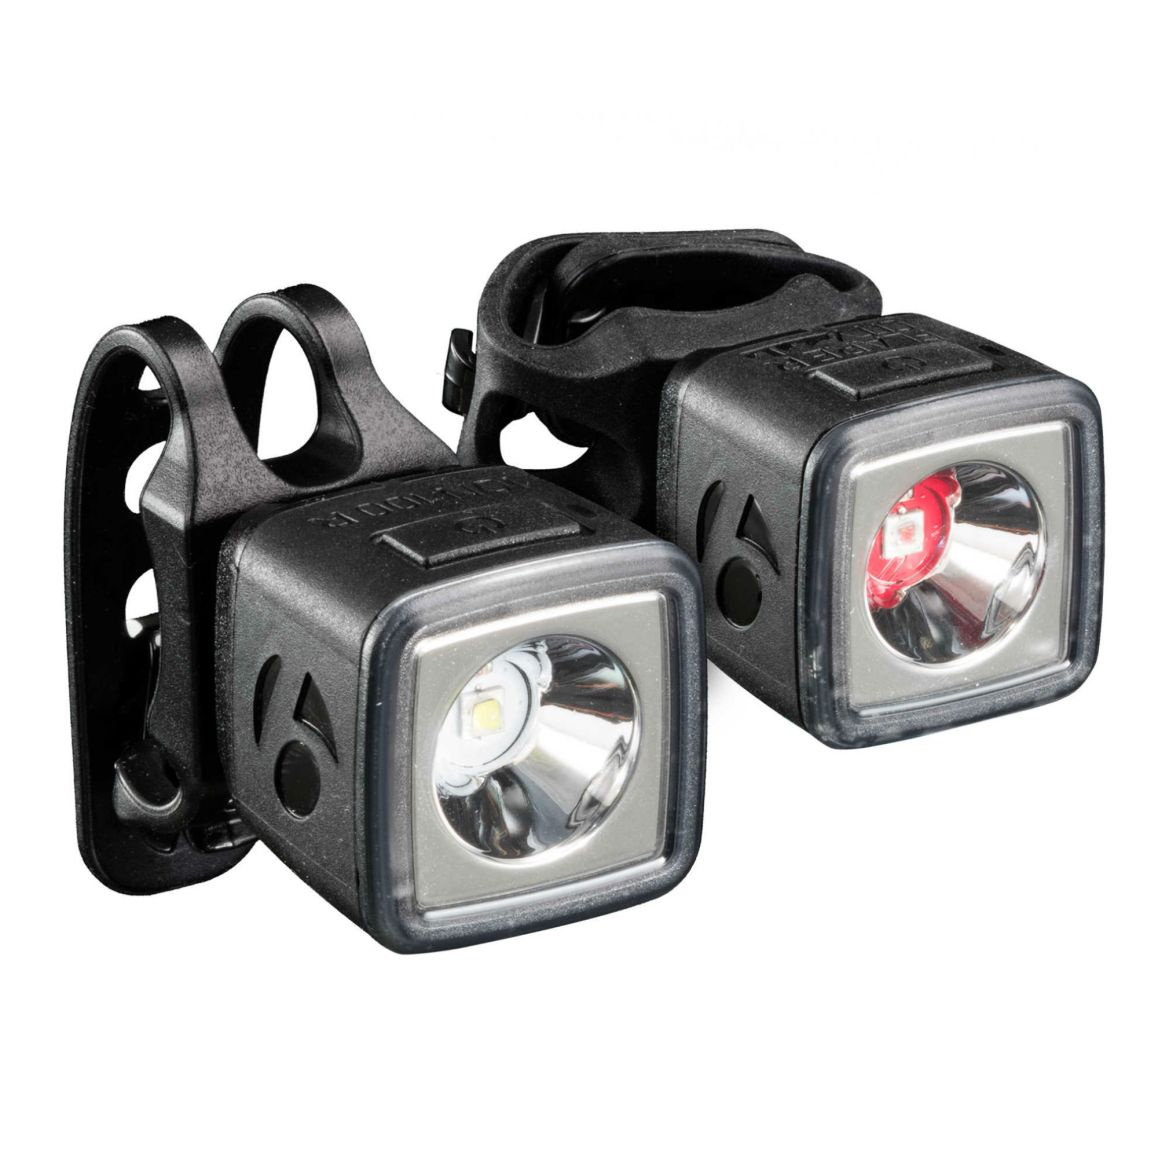 BONT-ION100-FLARE-R-CITY-LIGHT-SET